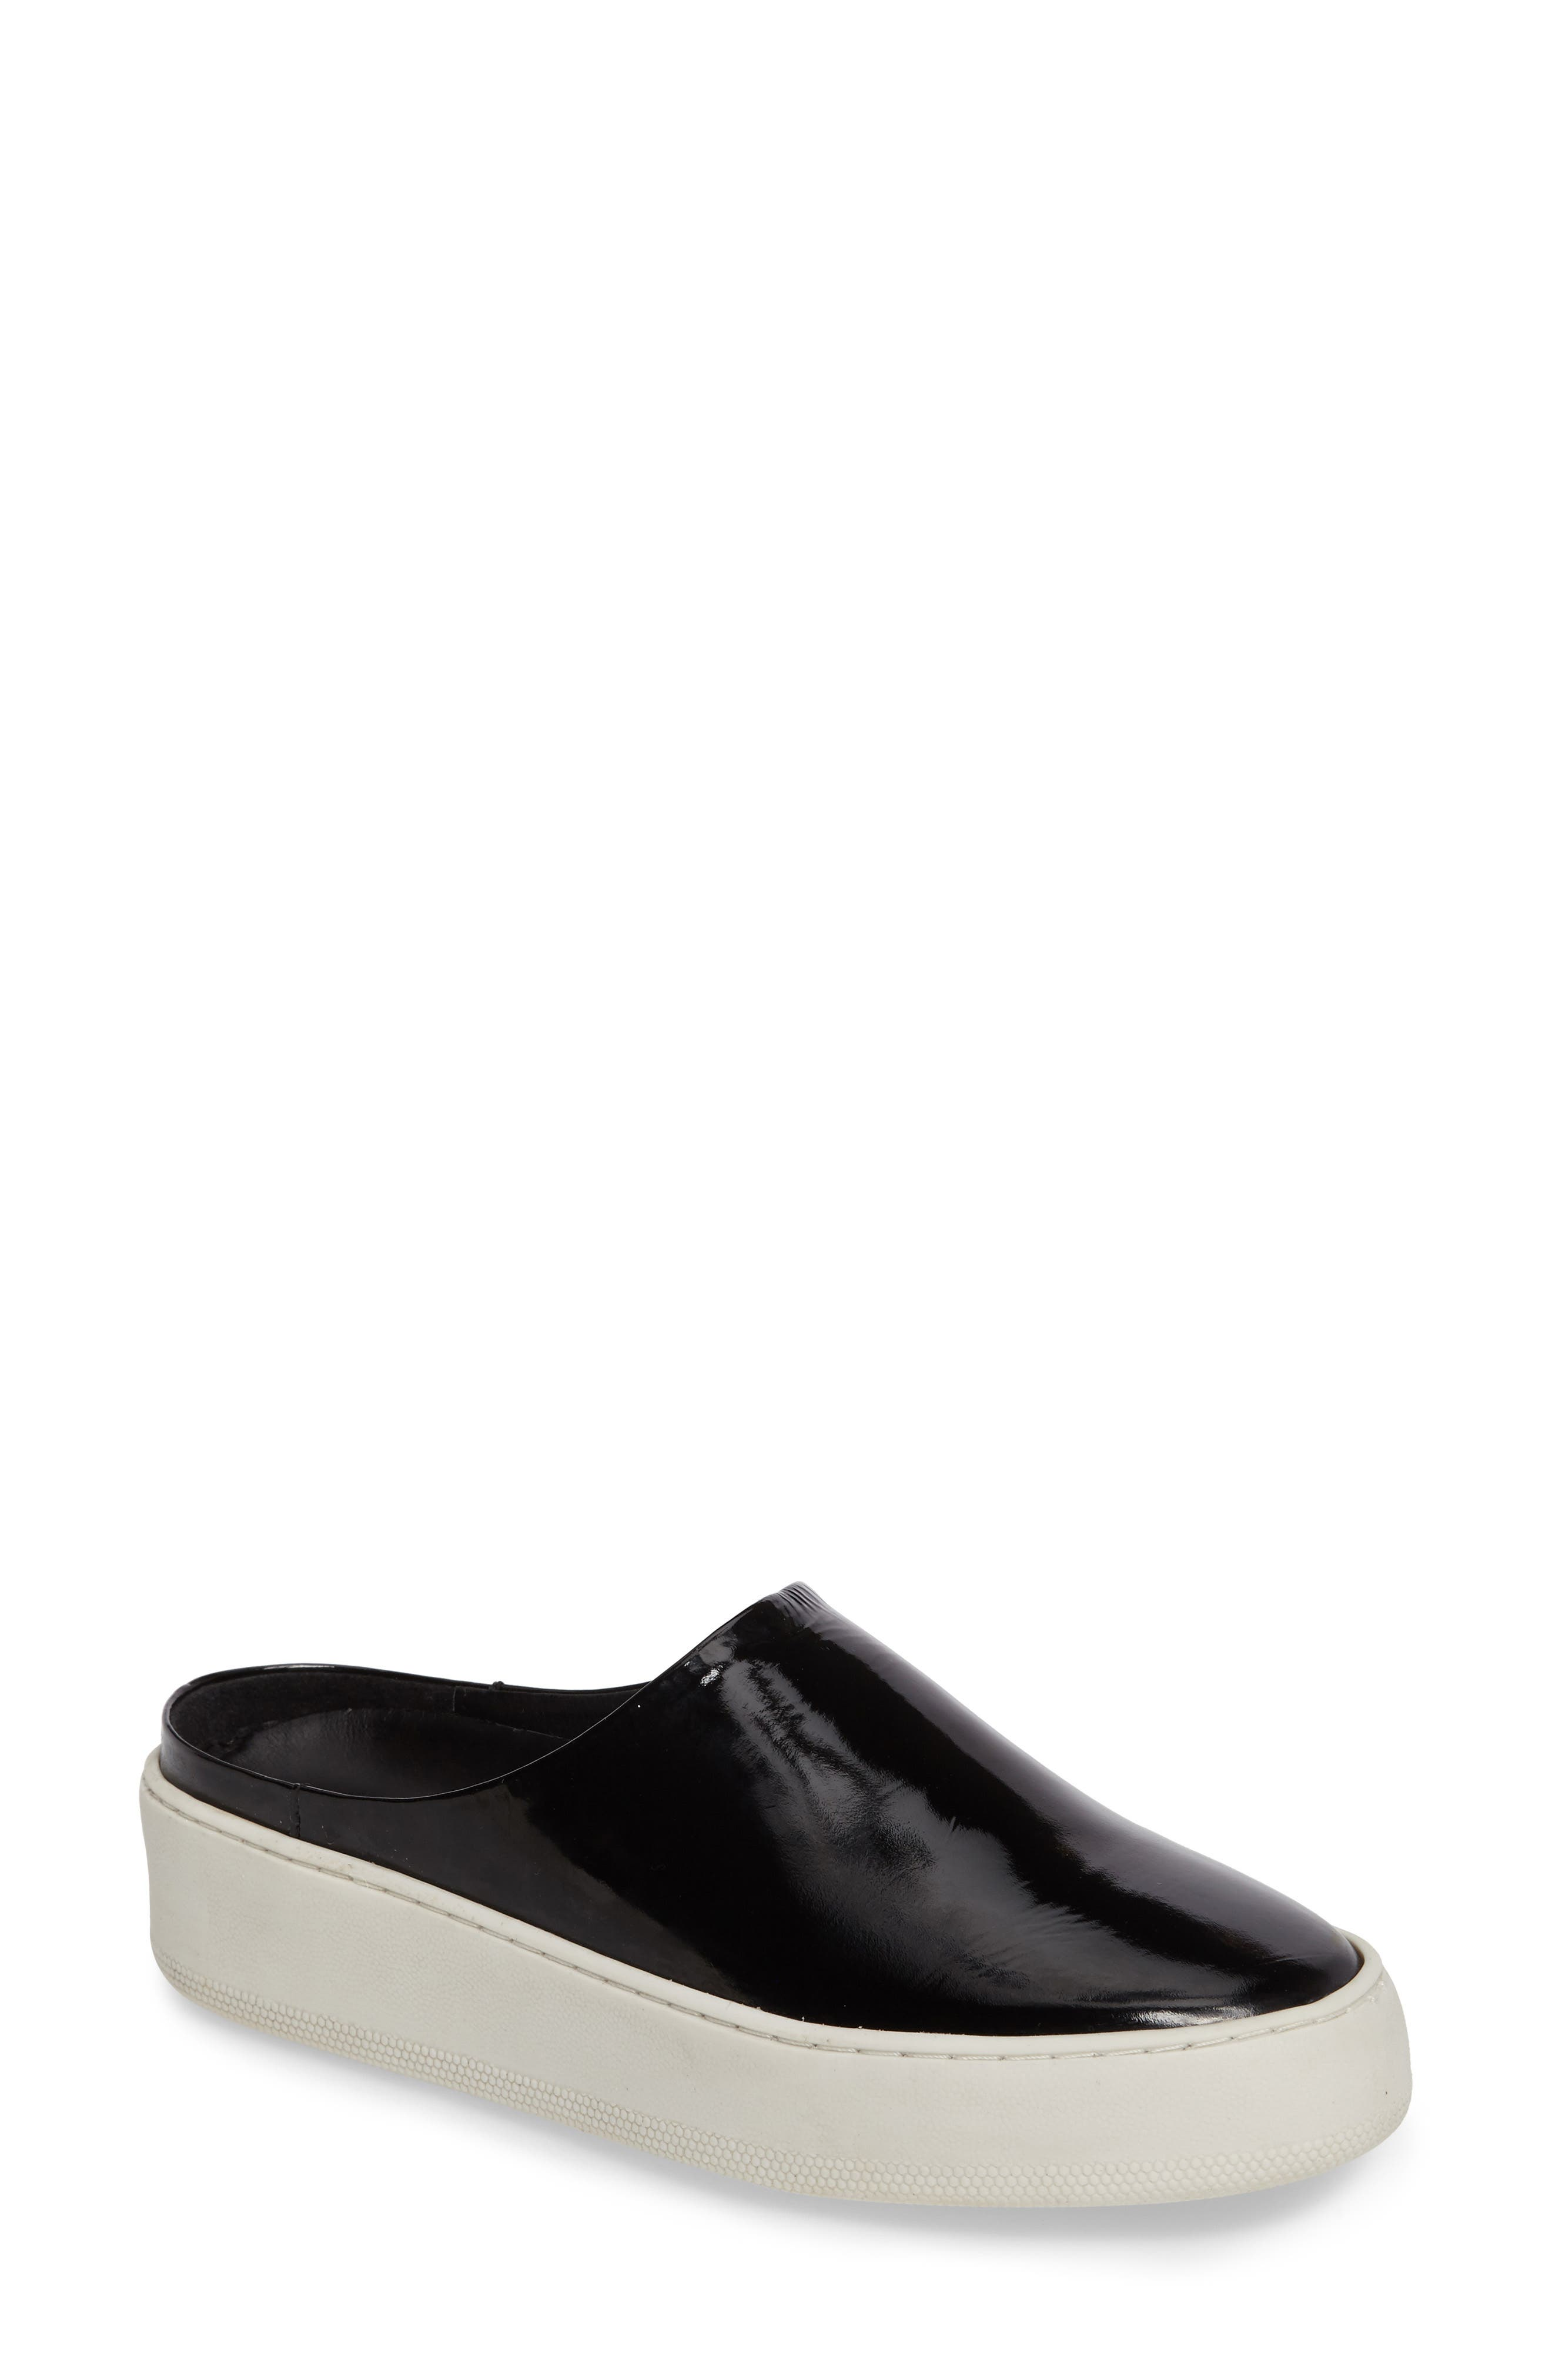 Wynwood Slip-On Sneaker,                         Main,                         color, 001